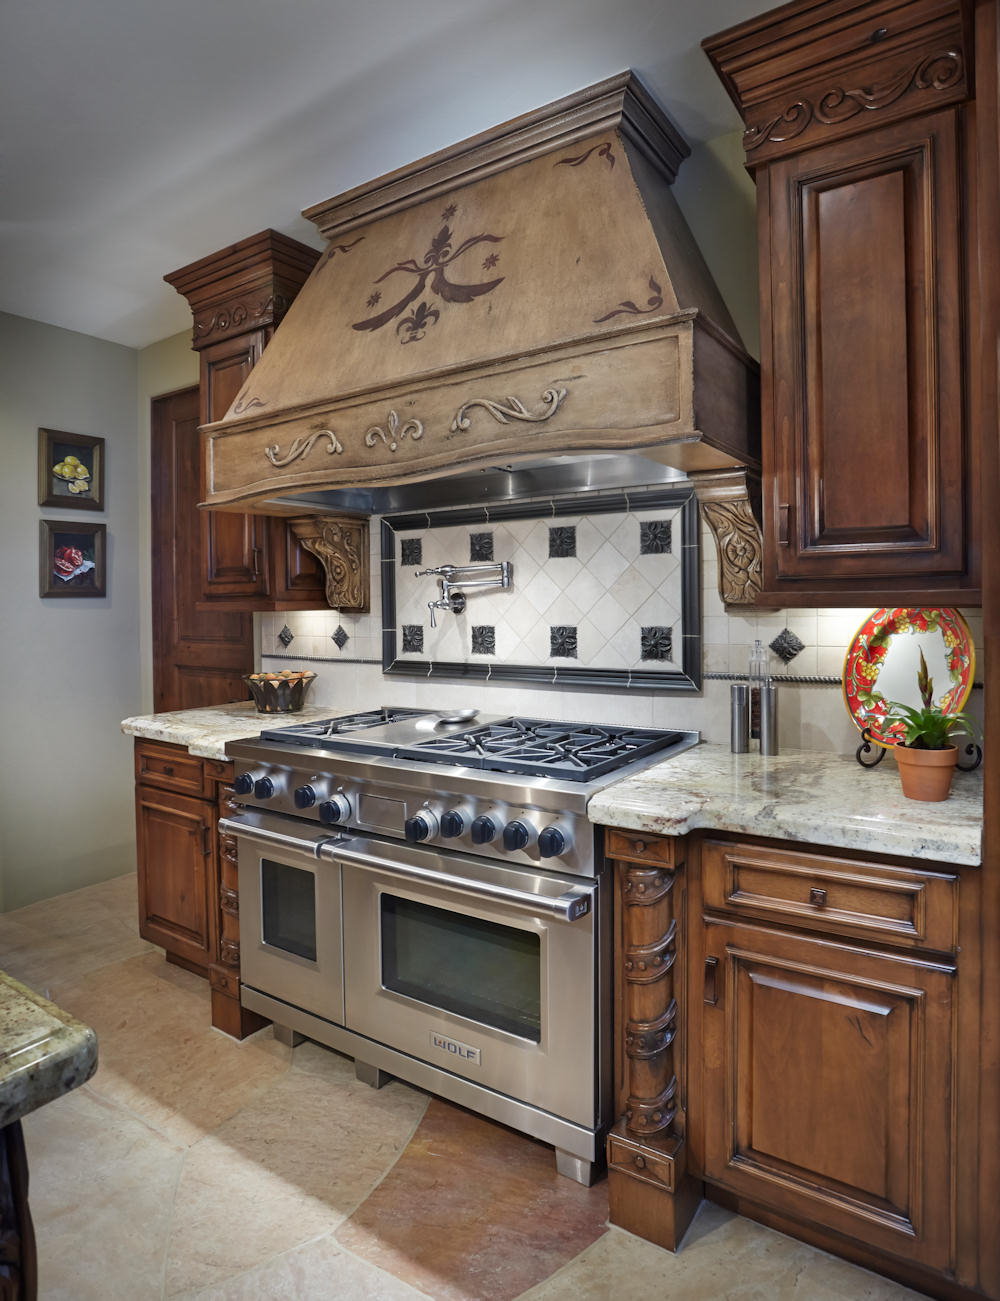 ... Granite Kitchen Countertops Old World Spanish, Custom Stovetop Hood  With Hand Carved Distressed Finish And A Carved ...